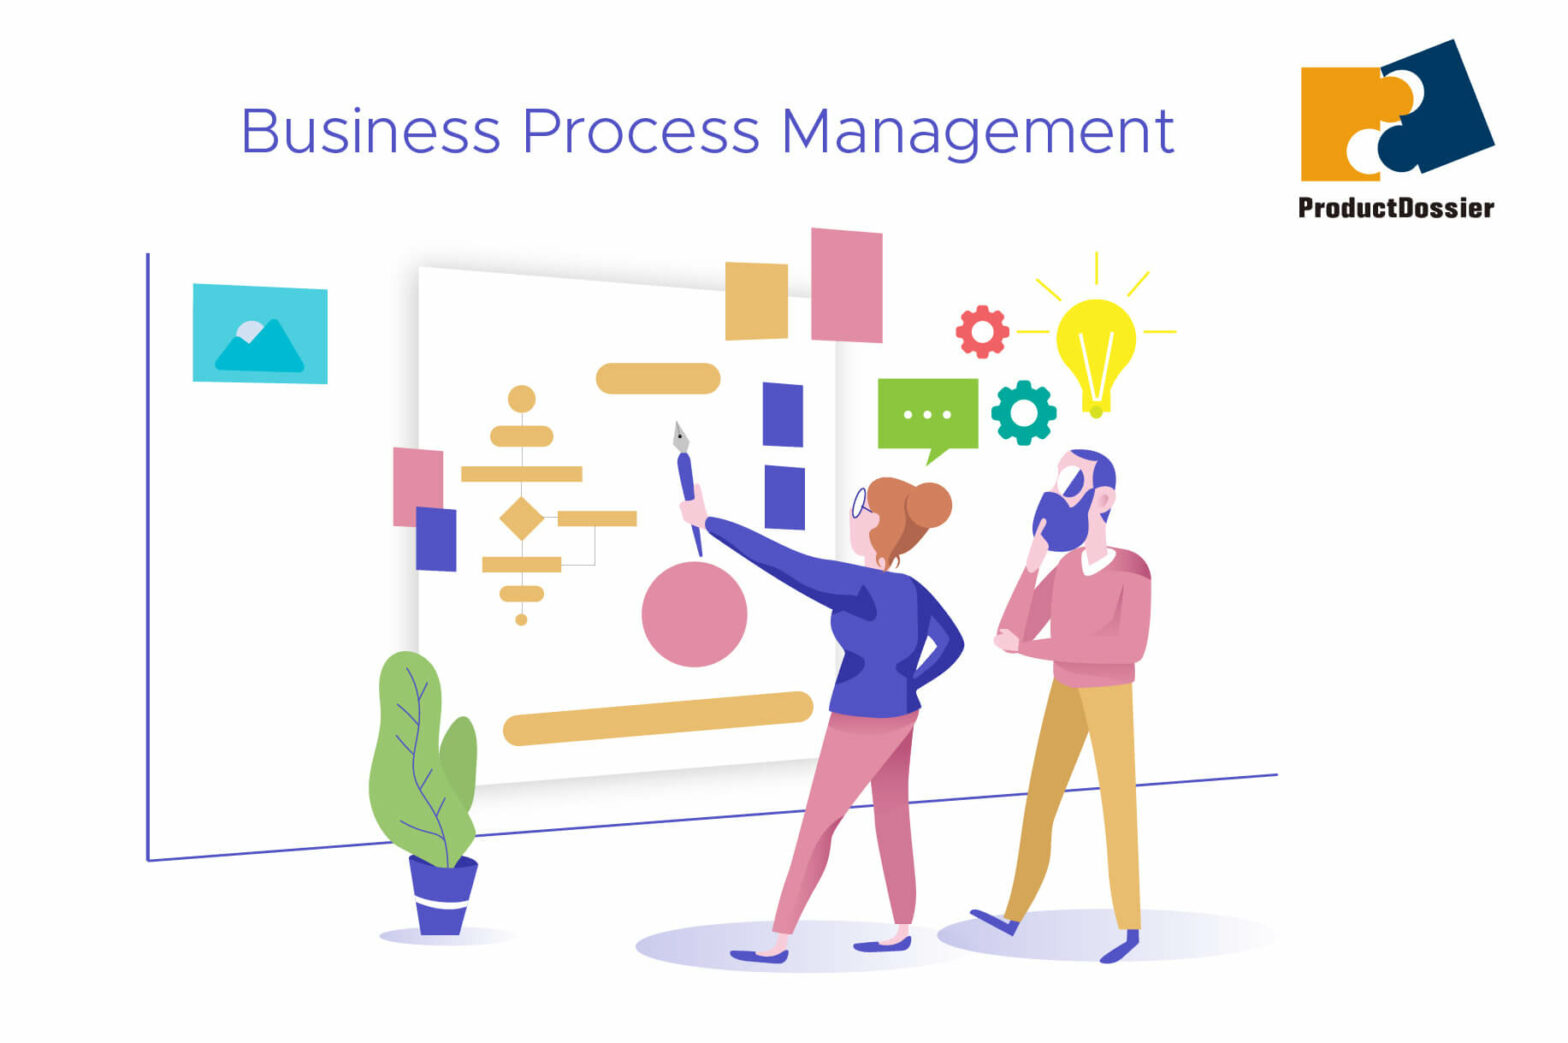 Is your PPM solution integrated with Business Process Management?